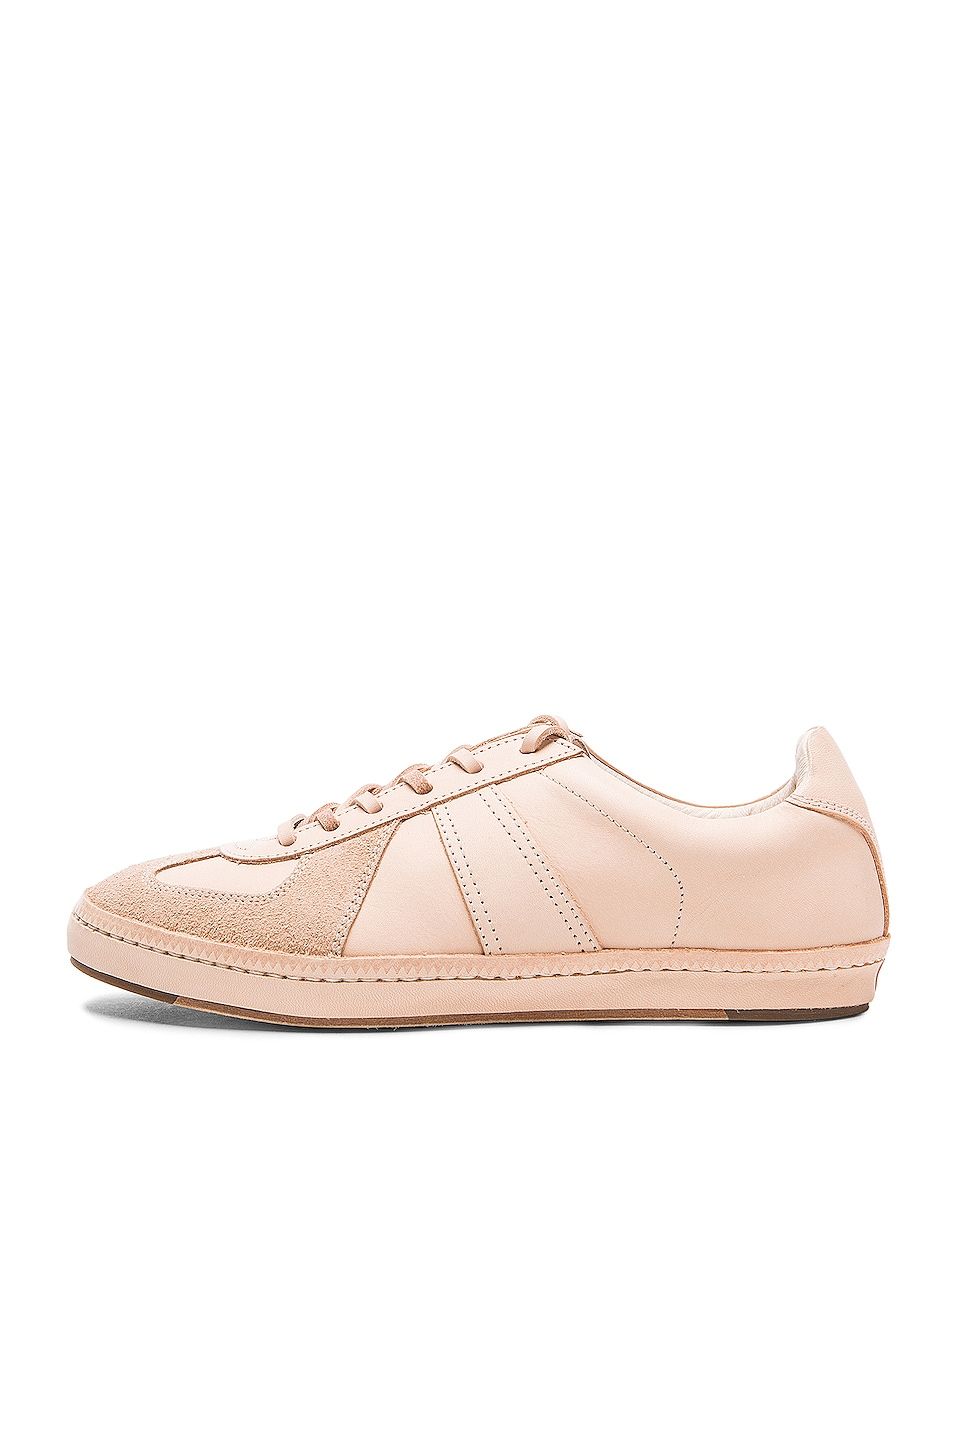 Image 5 of Hender Scheme Manual Industrial Product 05 in Natural